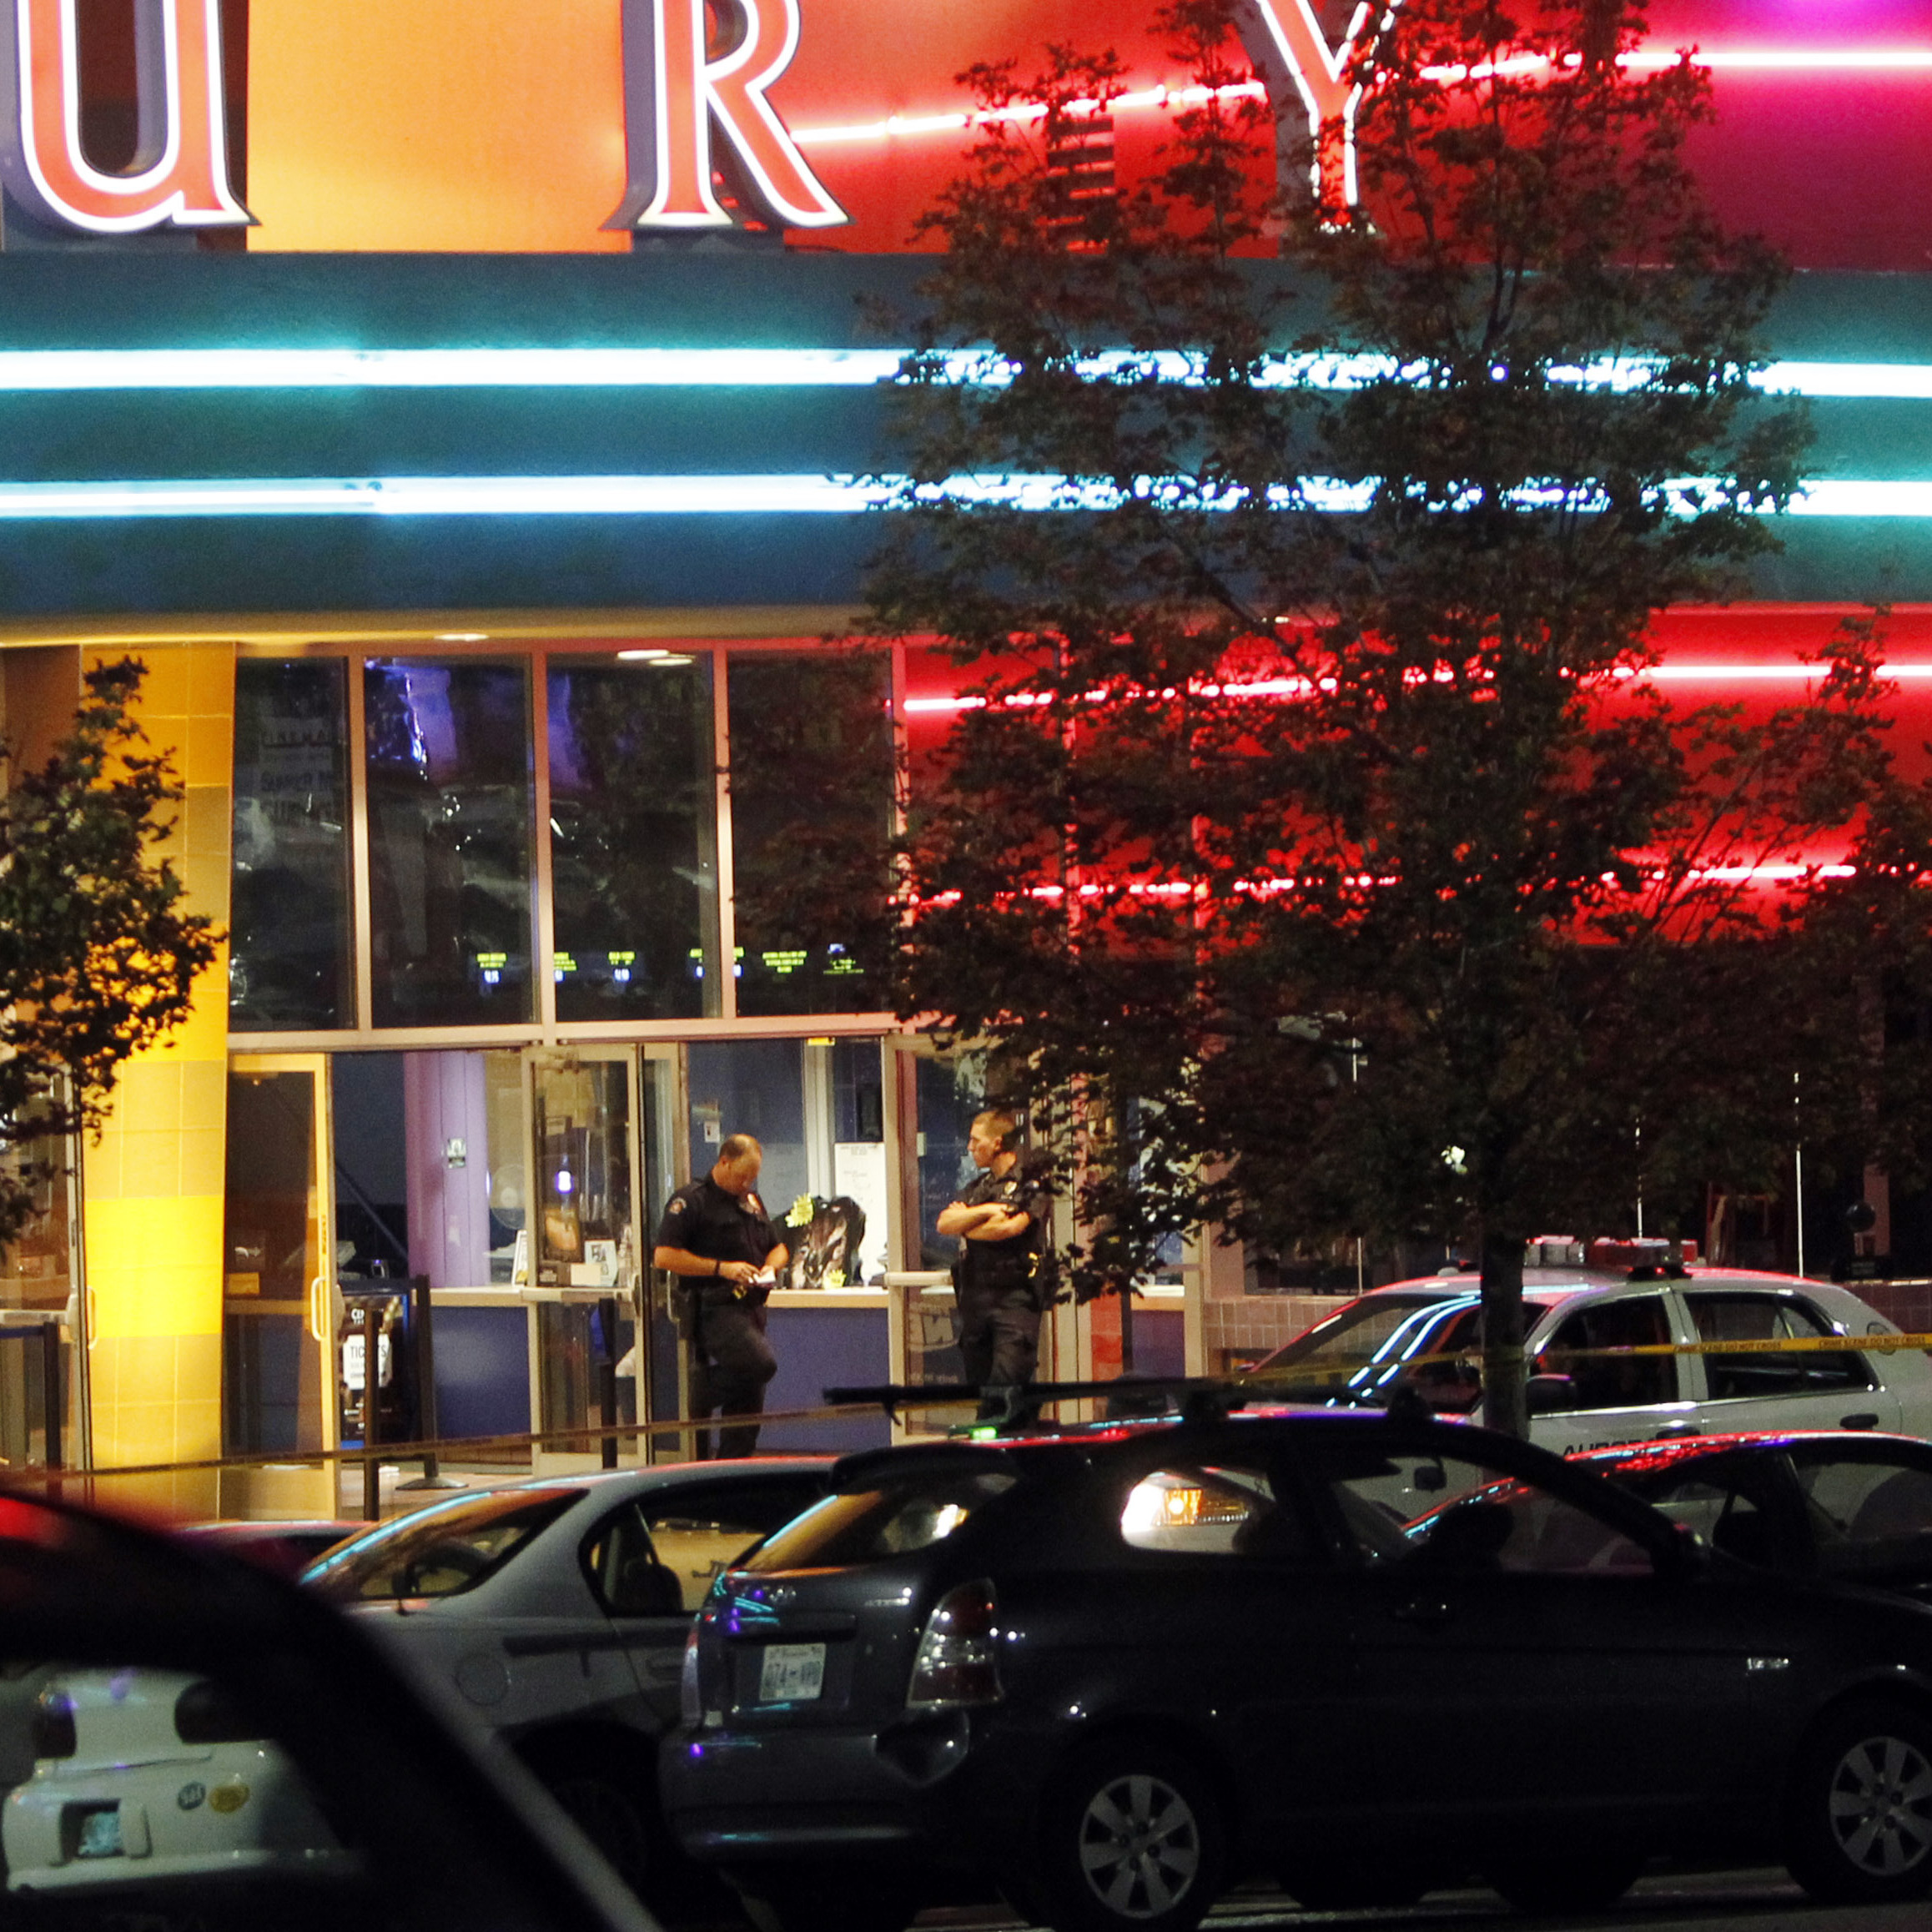 A police officer outside the Century 16 movie theater in Aurora, Colo., early Friday after a gunman opened fire on people watching a midnight screening of The Dark Knight Rises.